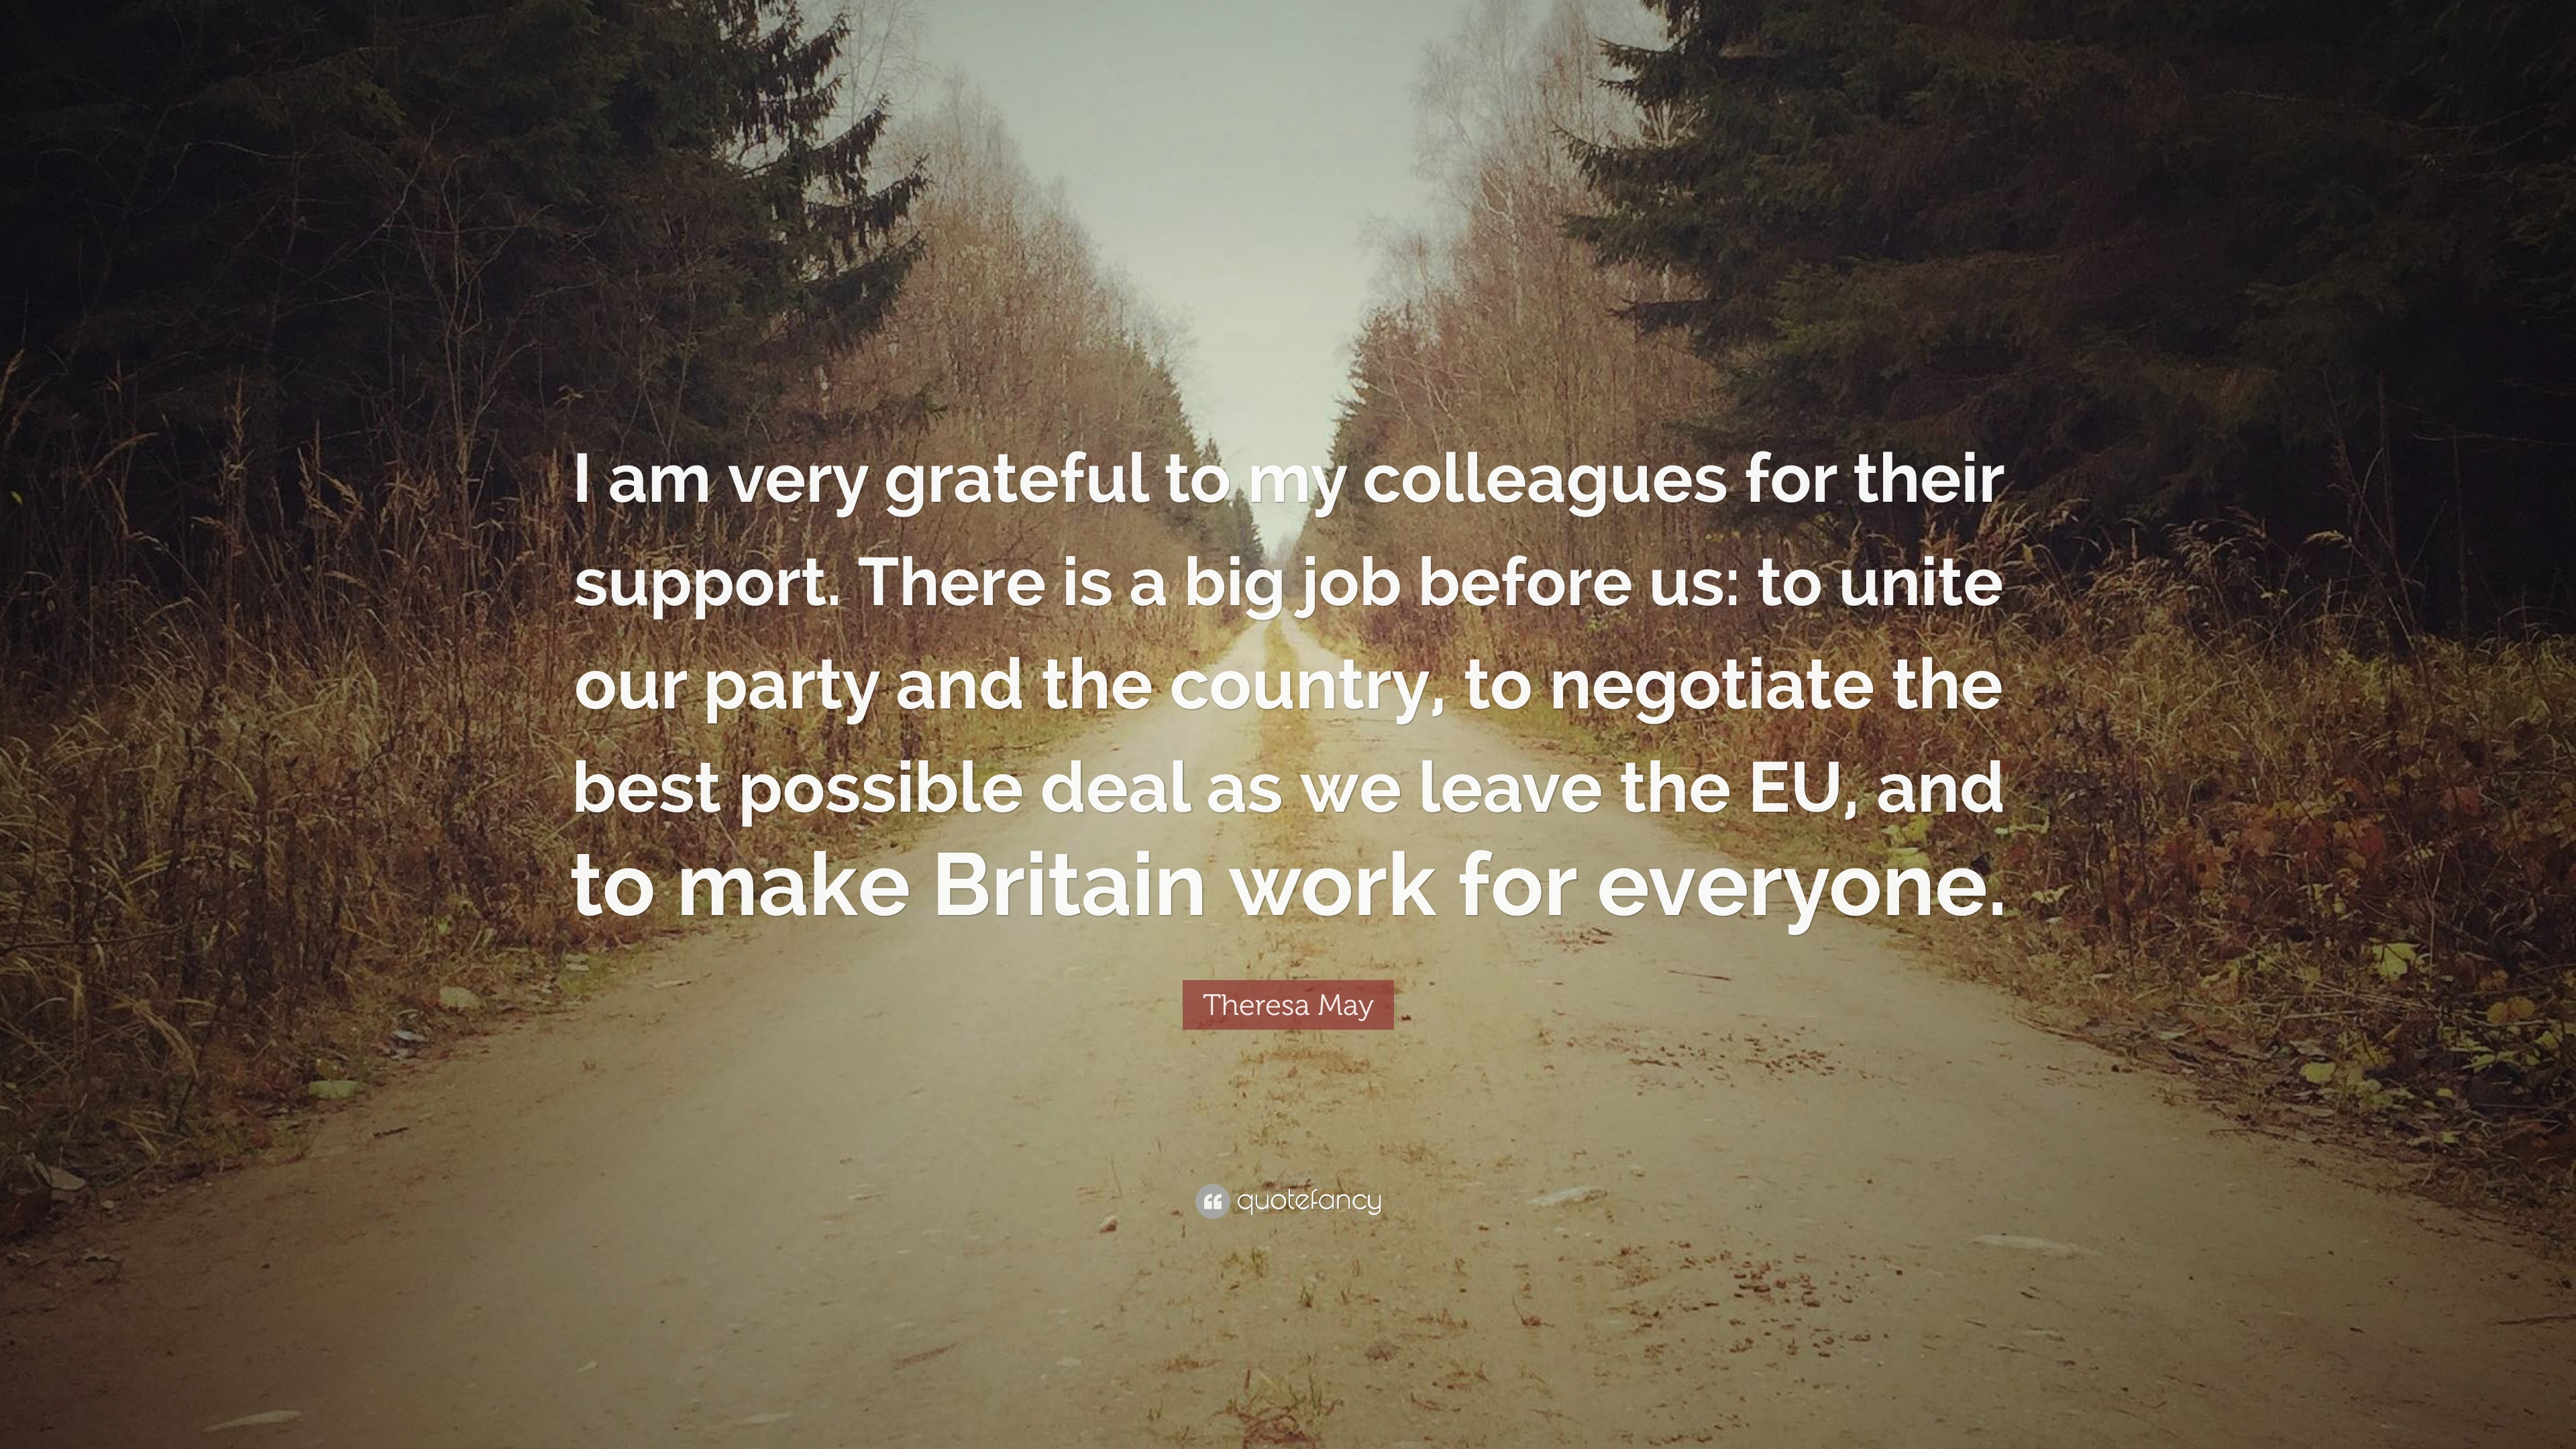 Theresa May Quote u201cI am very grateful